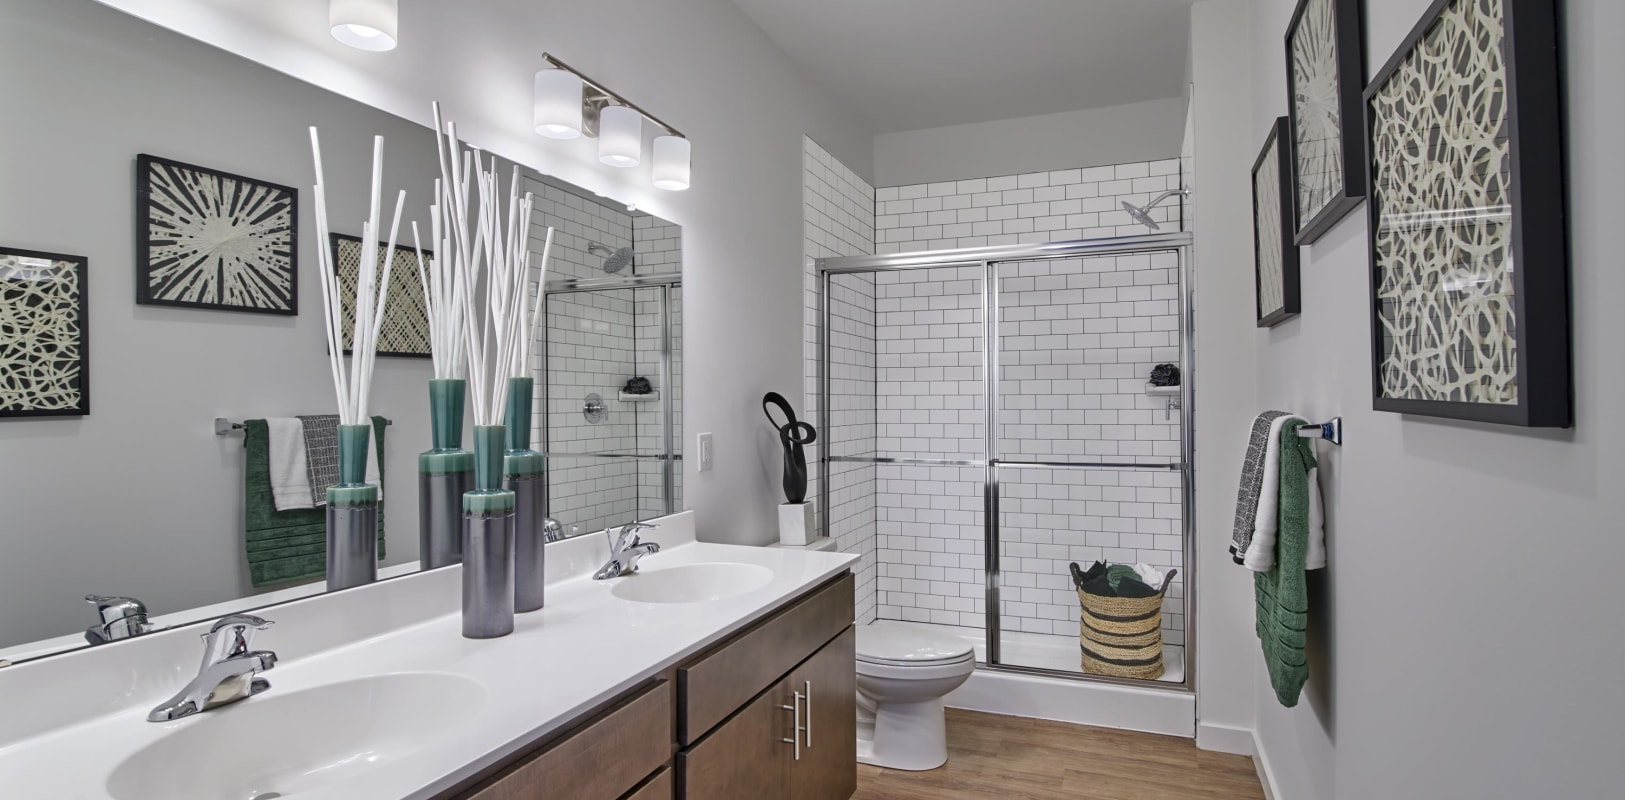 Double sinks and a walk-in shower in a model home bathroom at The Mills at Lehigh in Bethlehem, Pennsylvania